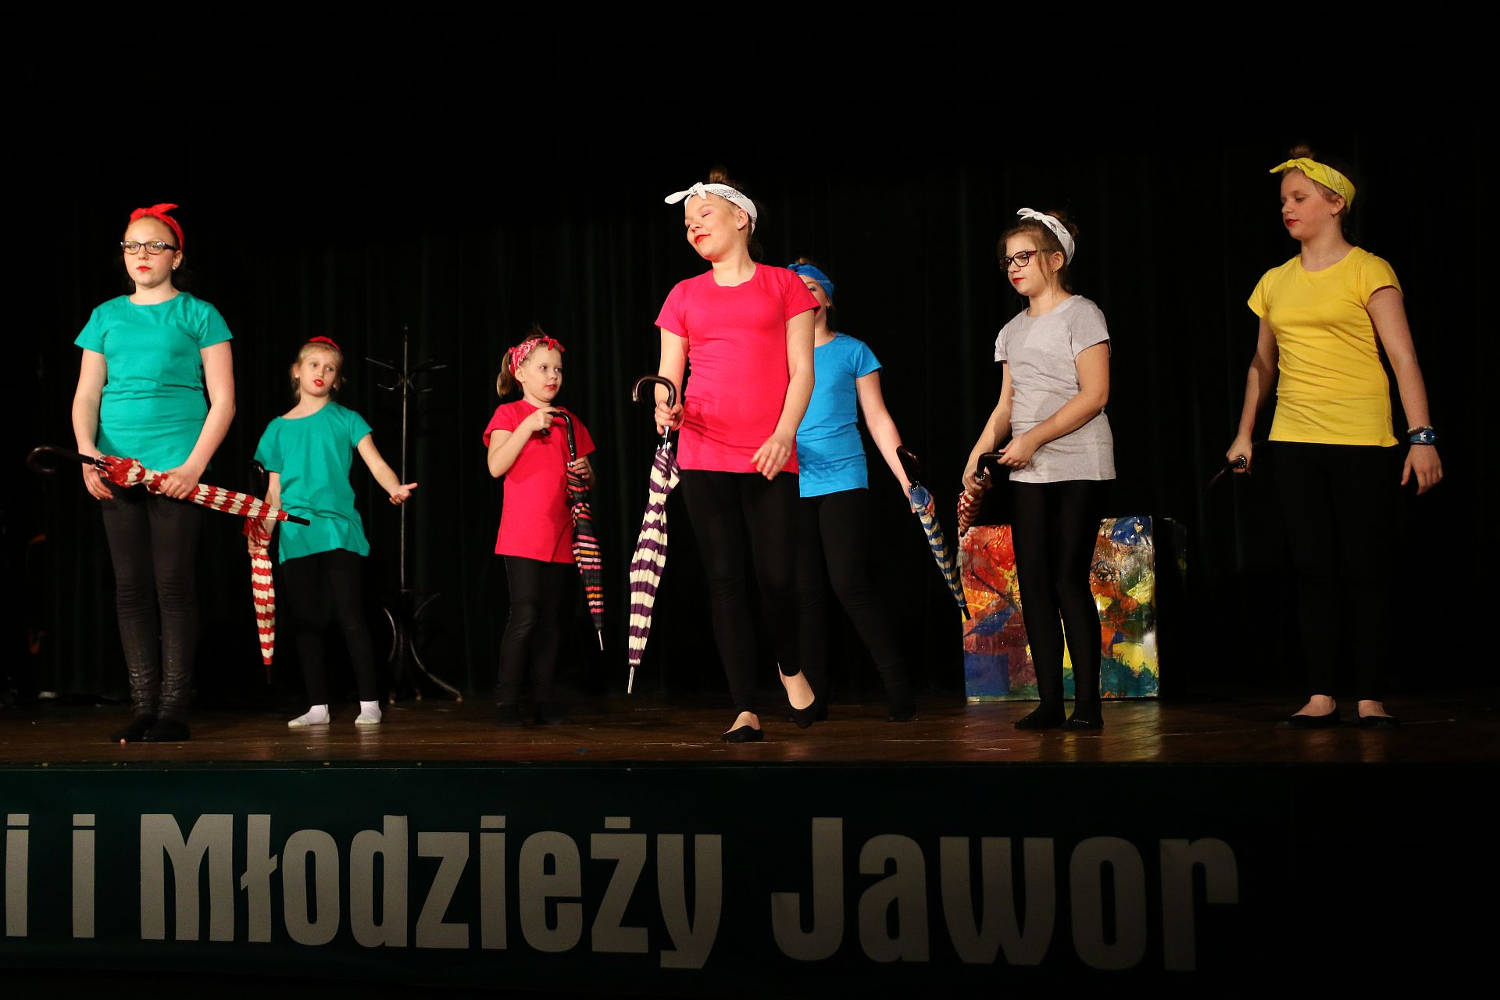 jawor2016